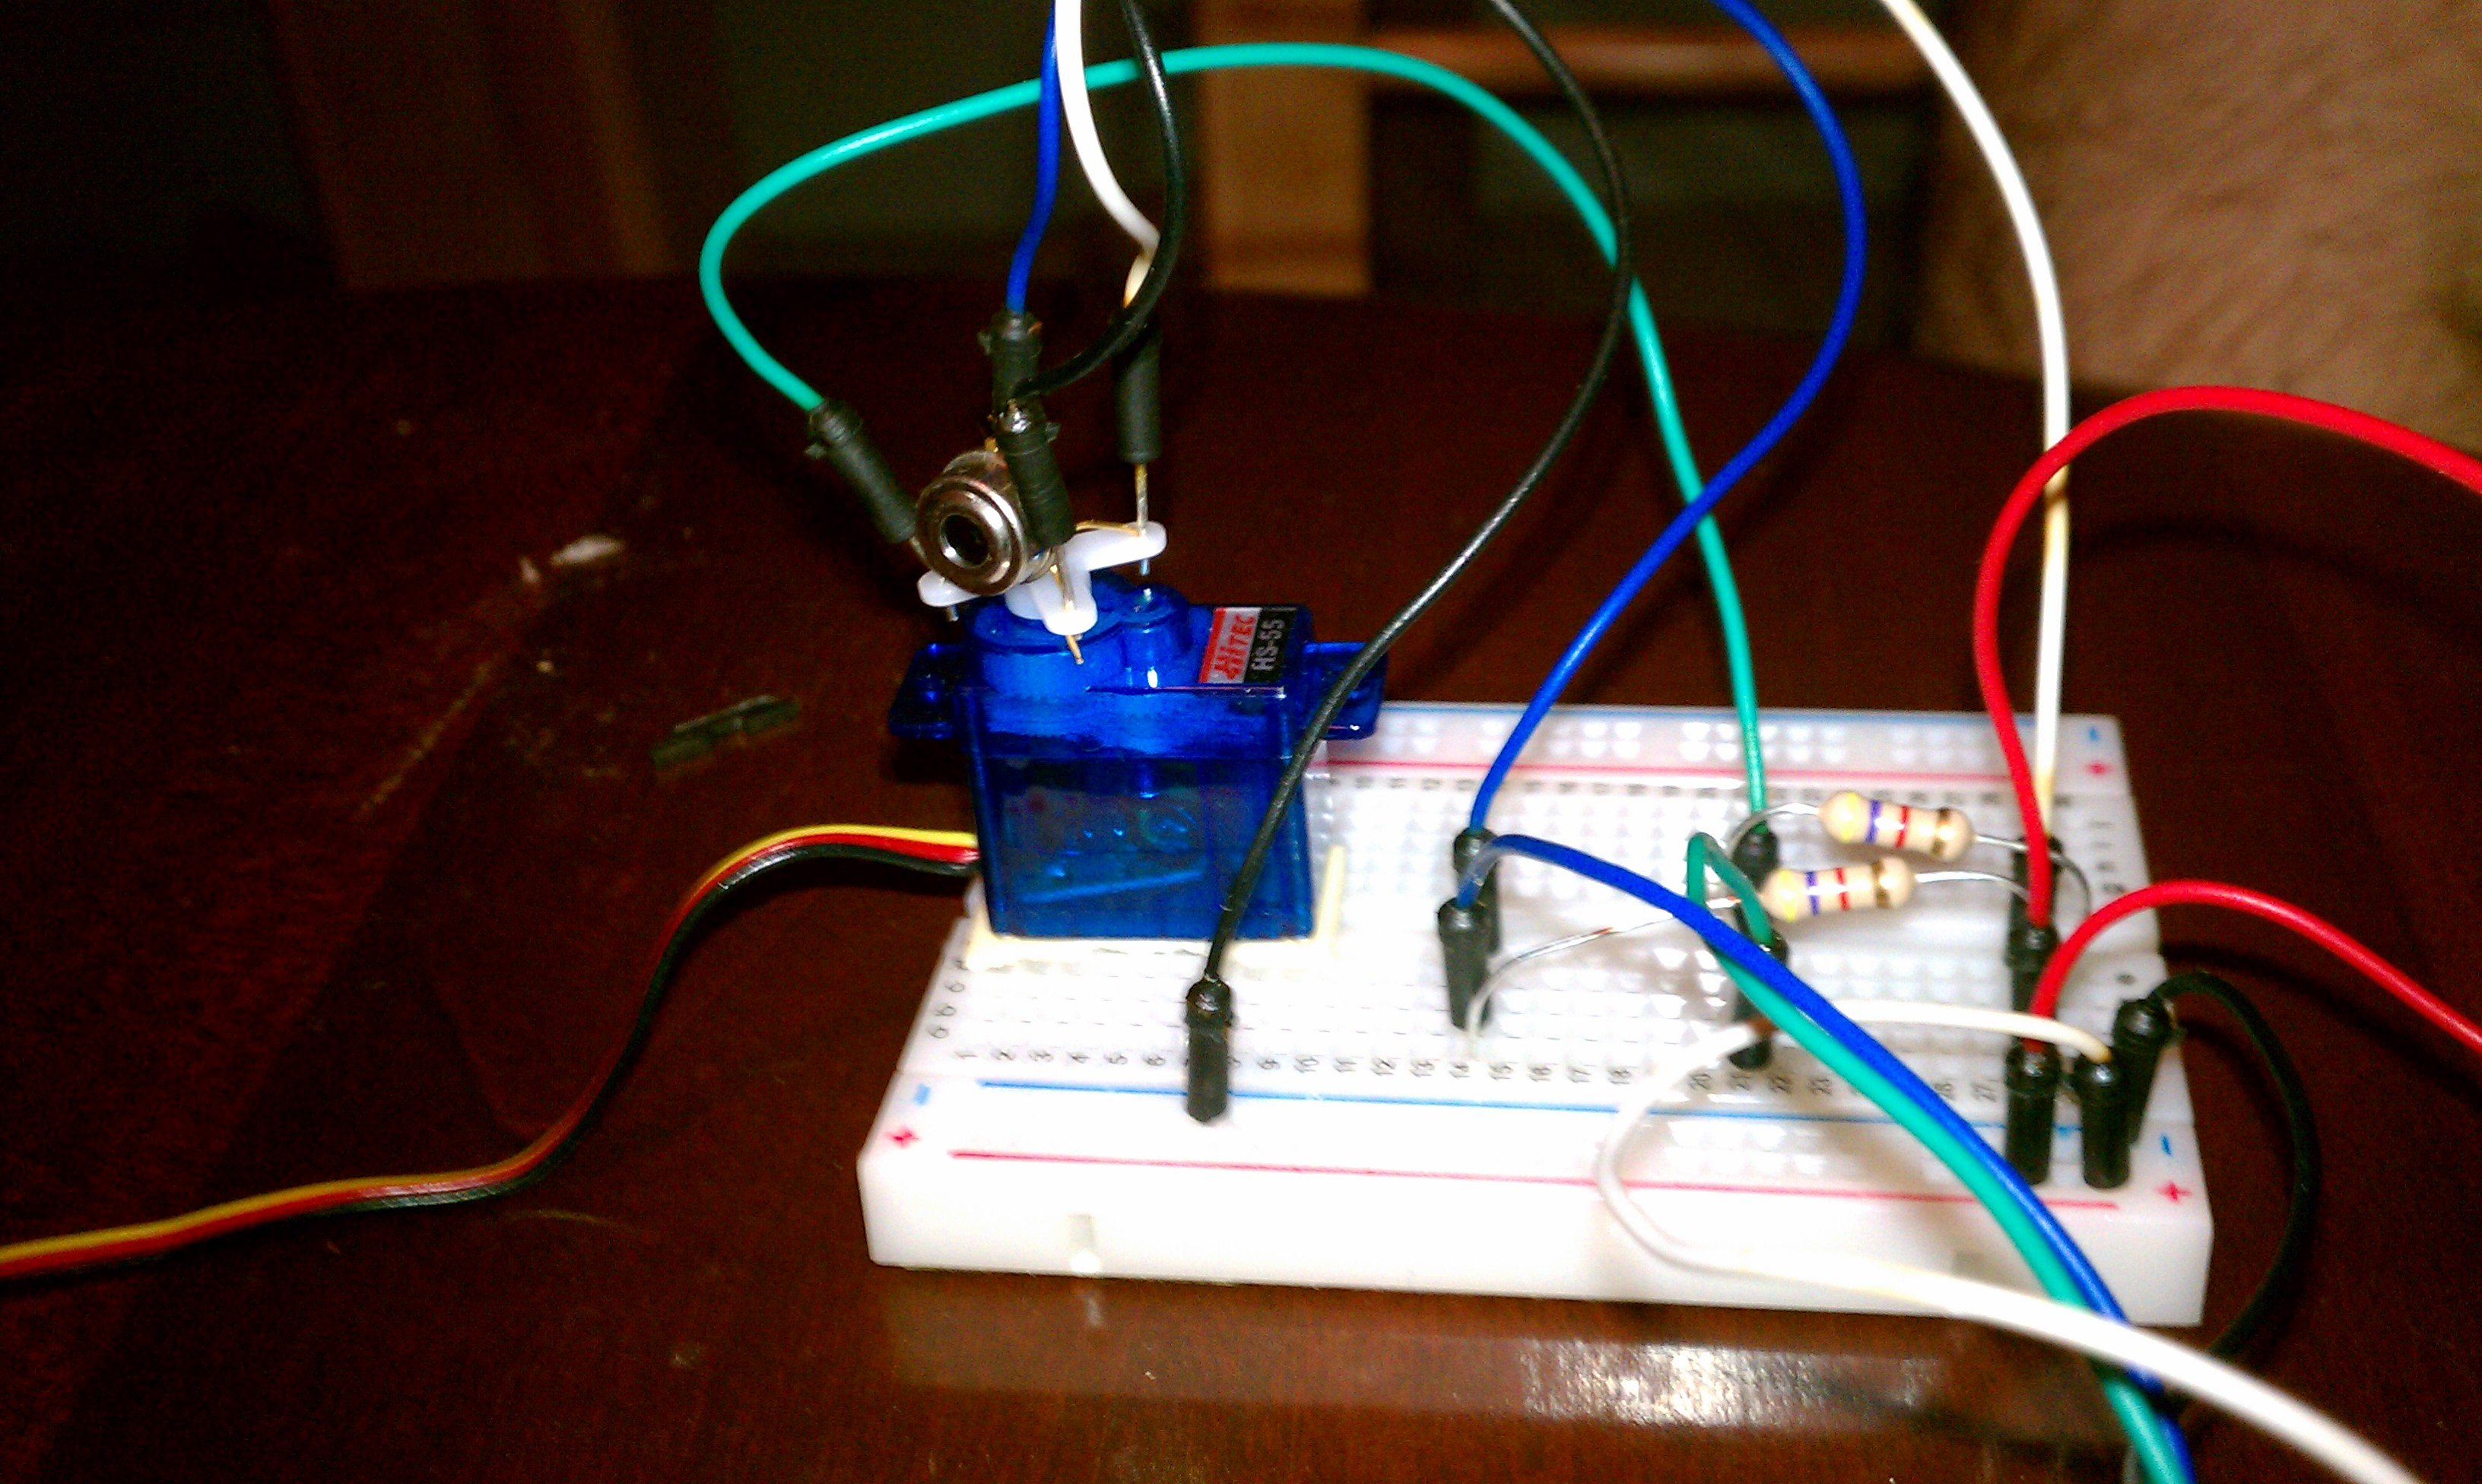 Servo and IR Thermometer Mounted on Breadboard